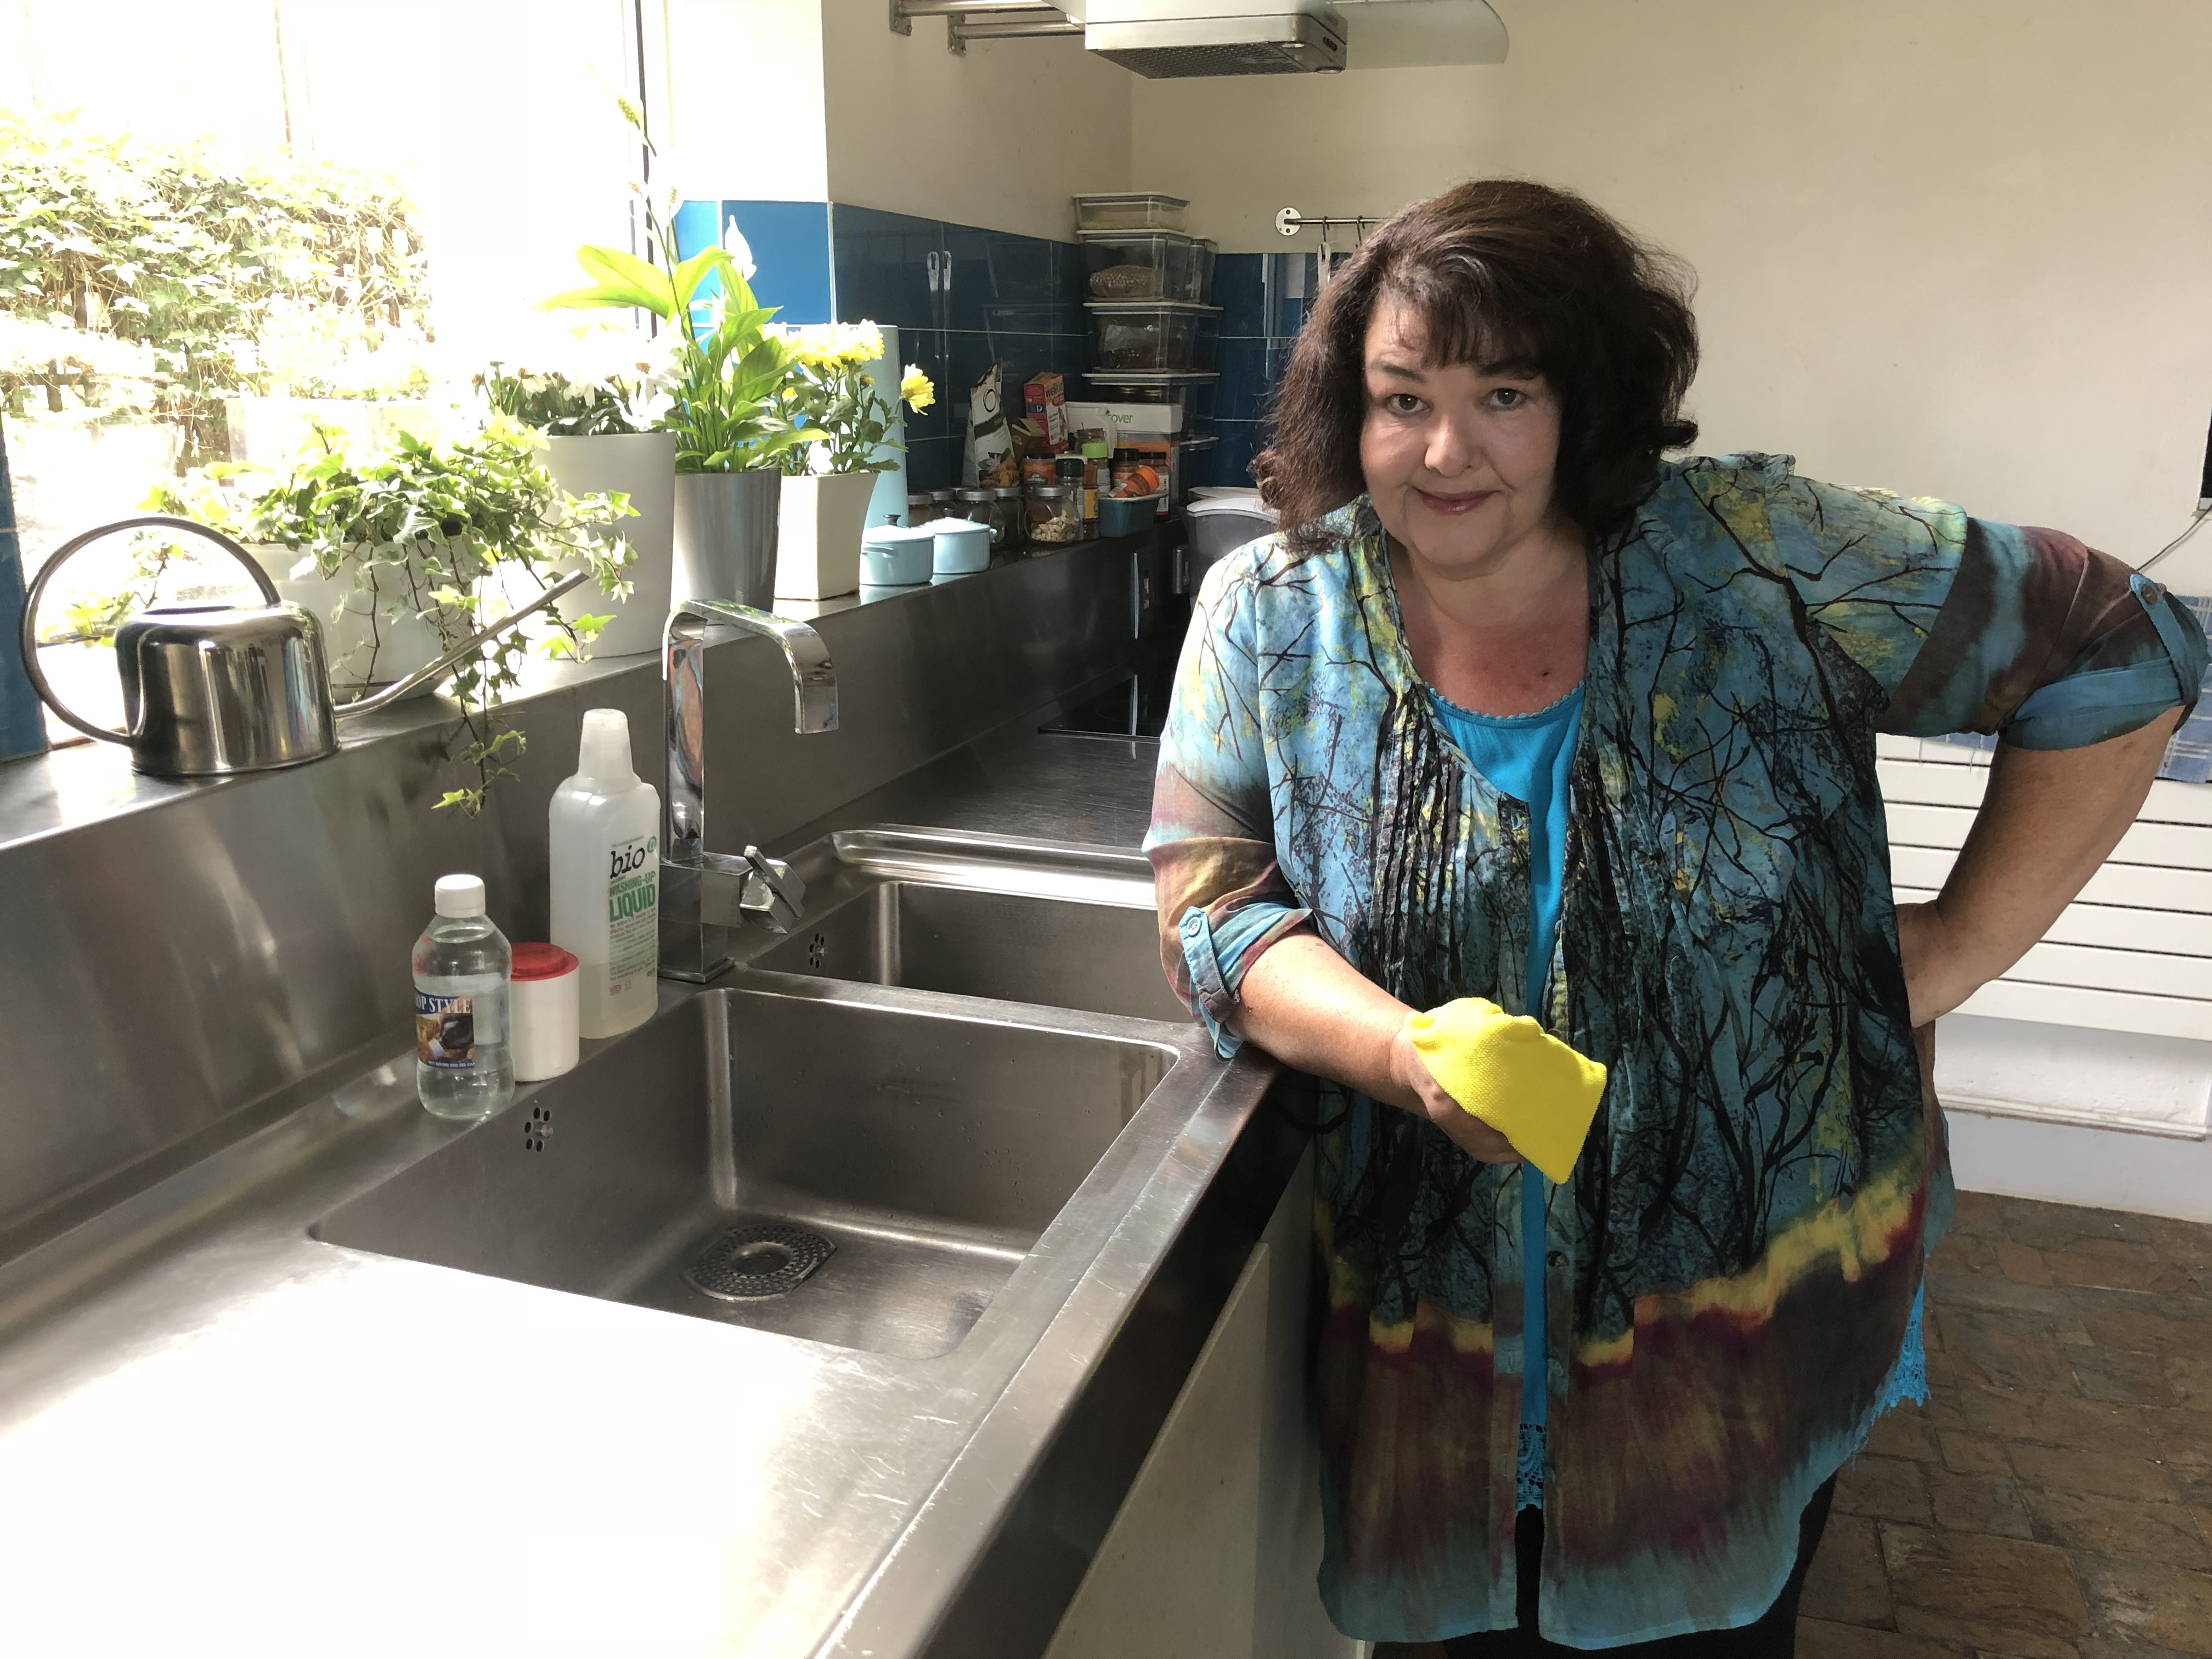 penney in kitchen, airtopia